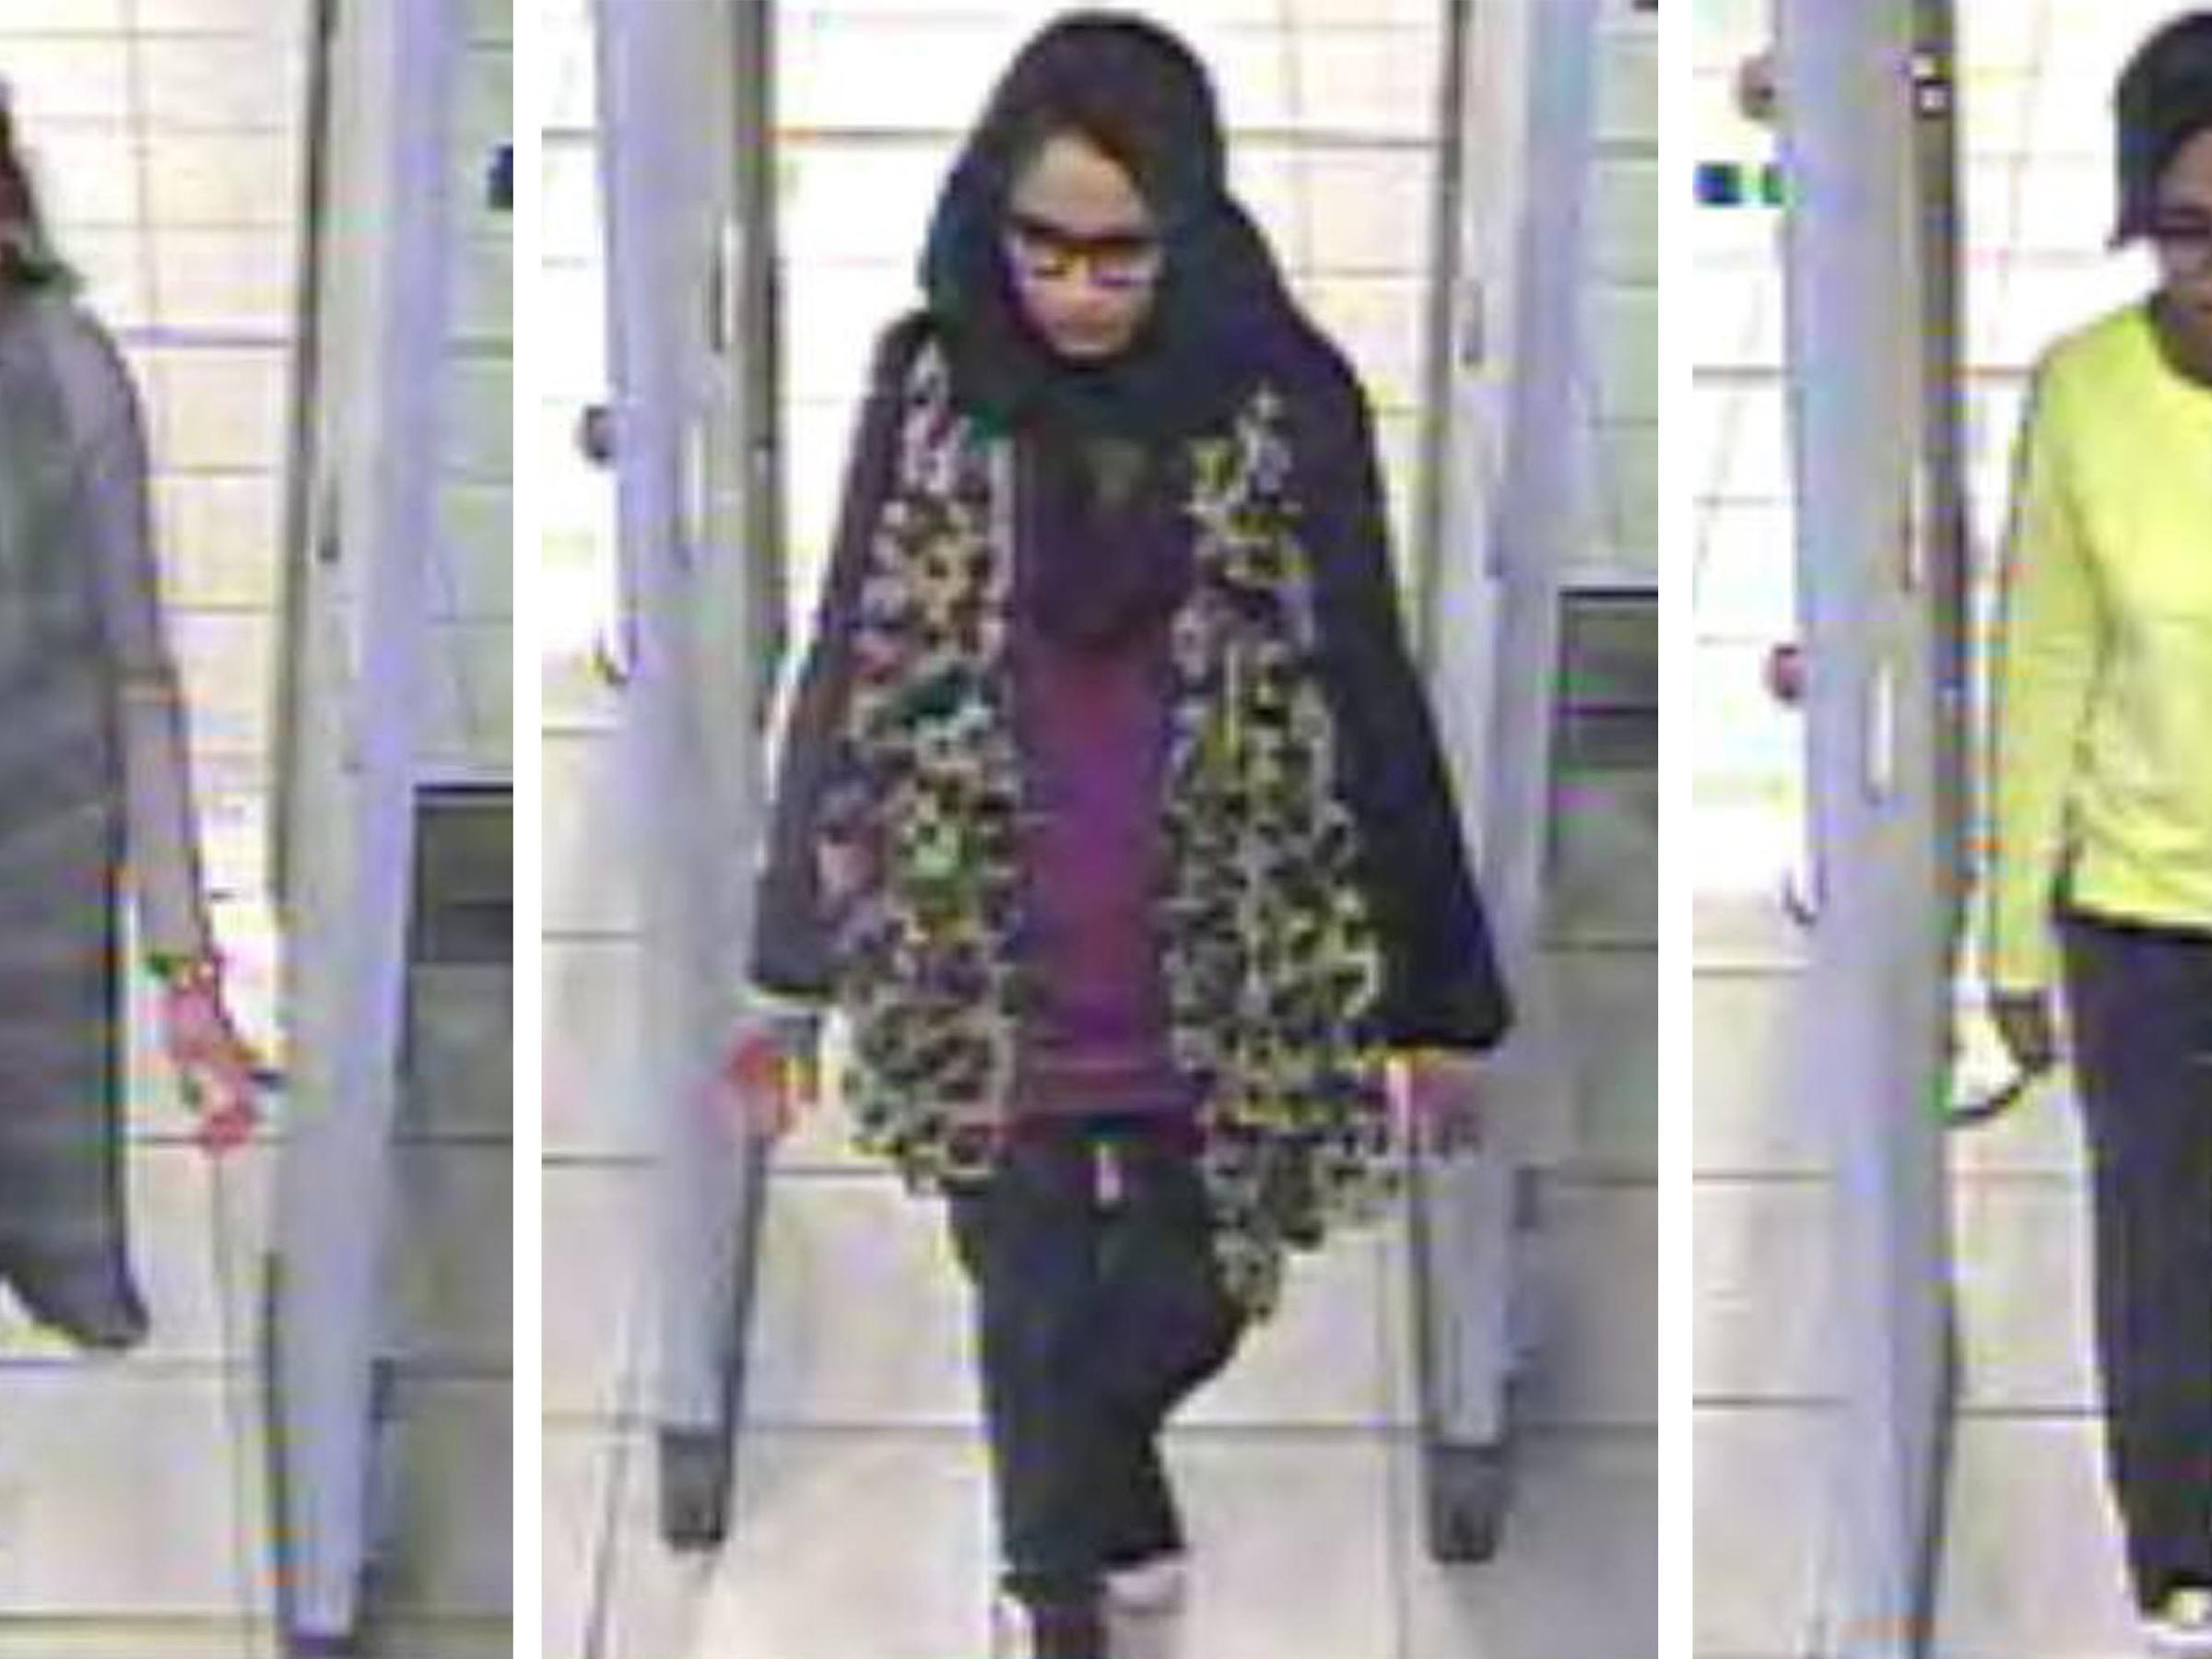 British Isil bride Shamima Begum can return to UK, Justice Secretary concedes